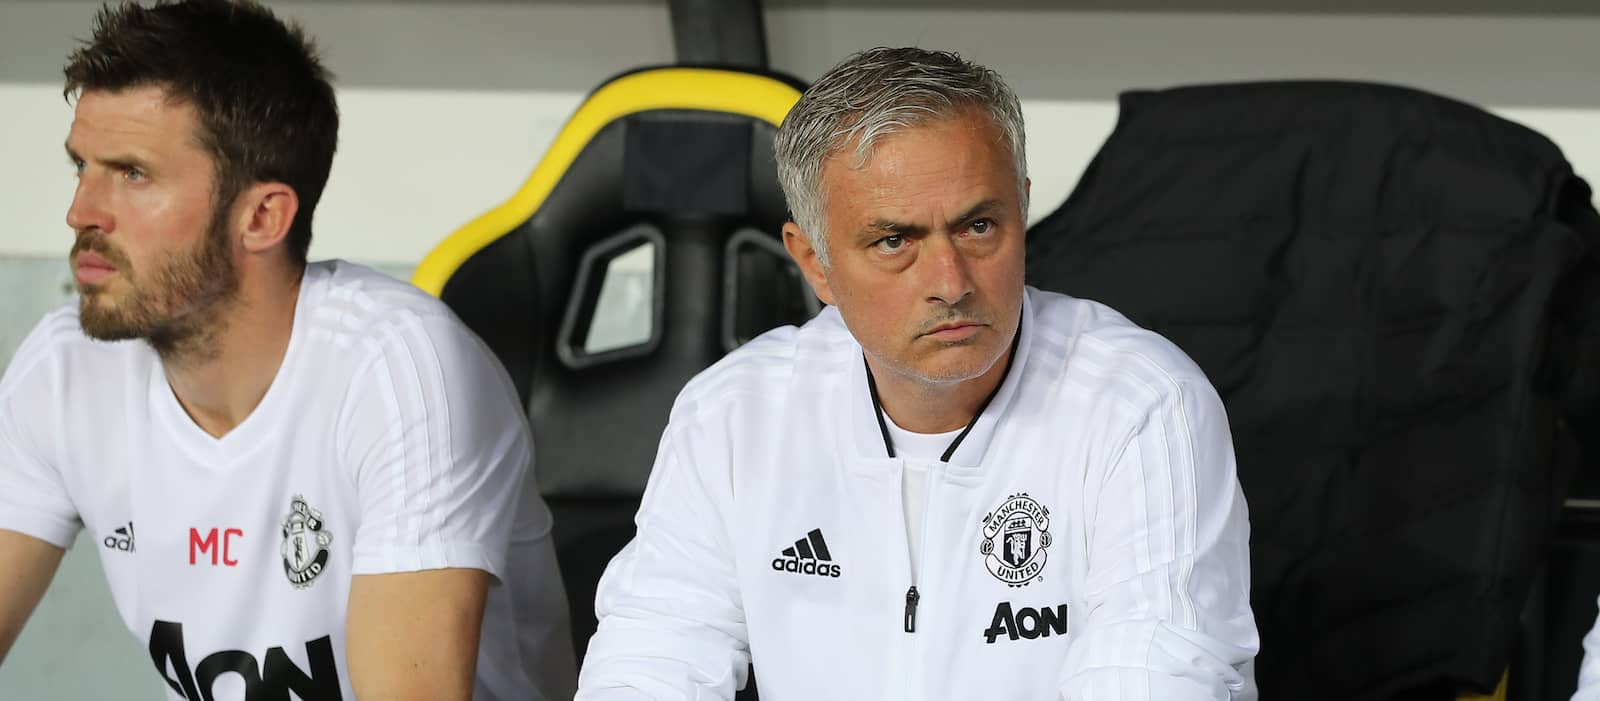 Manchester United aren't improving under Jose Mourinho and can't win titles, claims Scholes